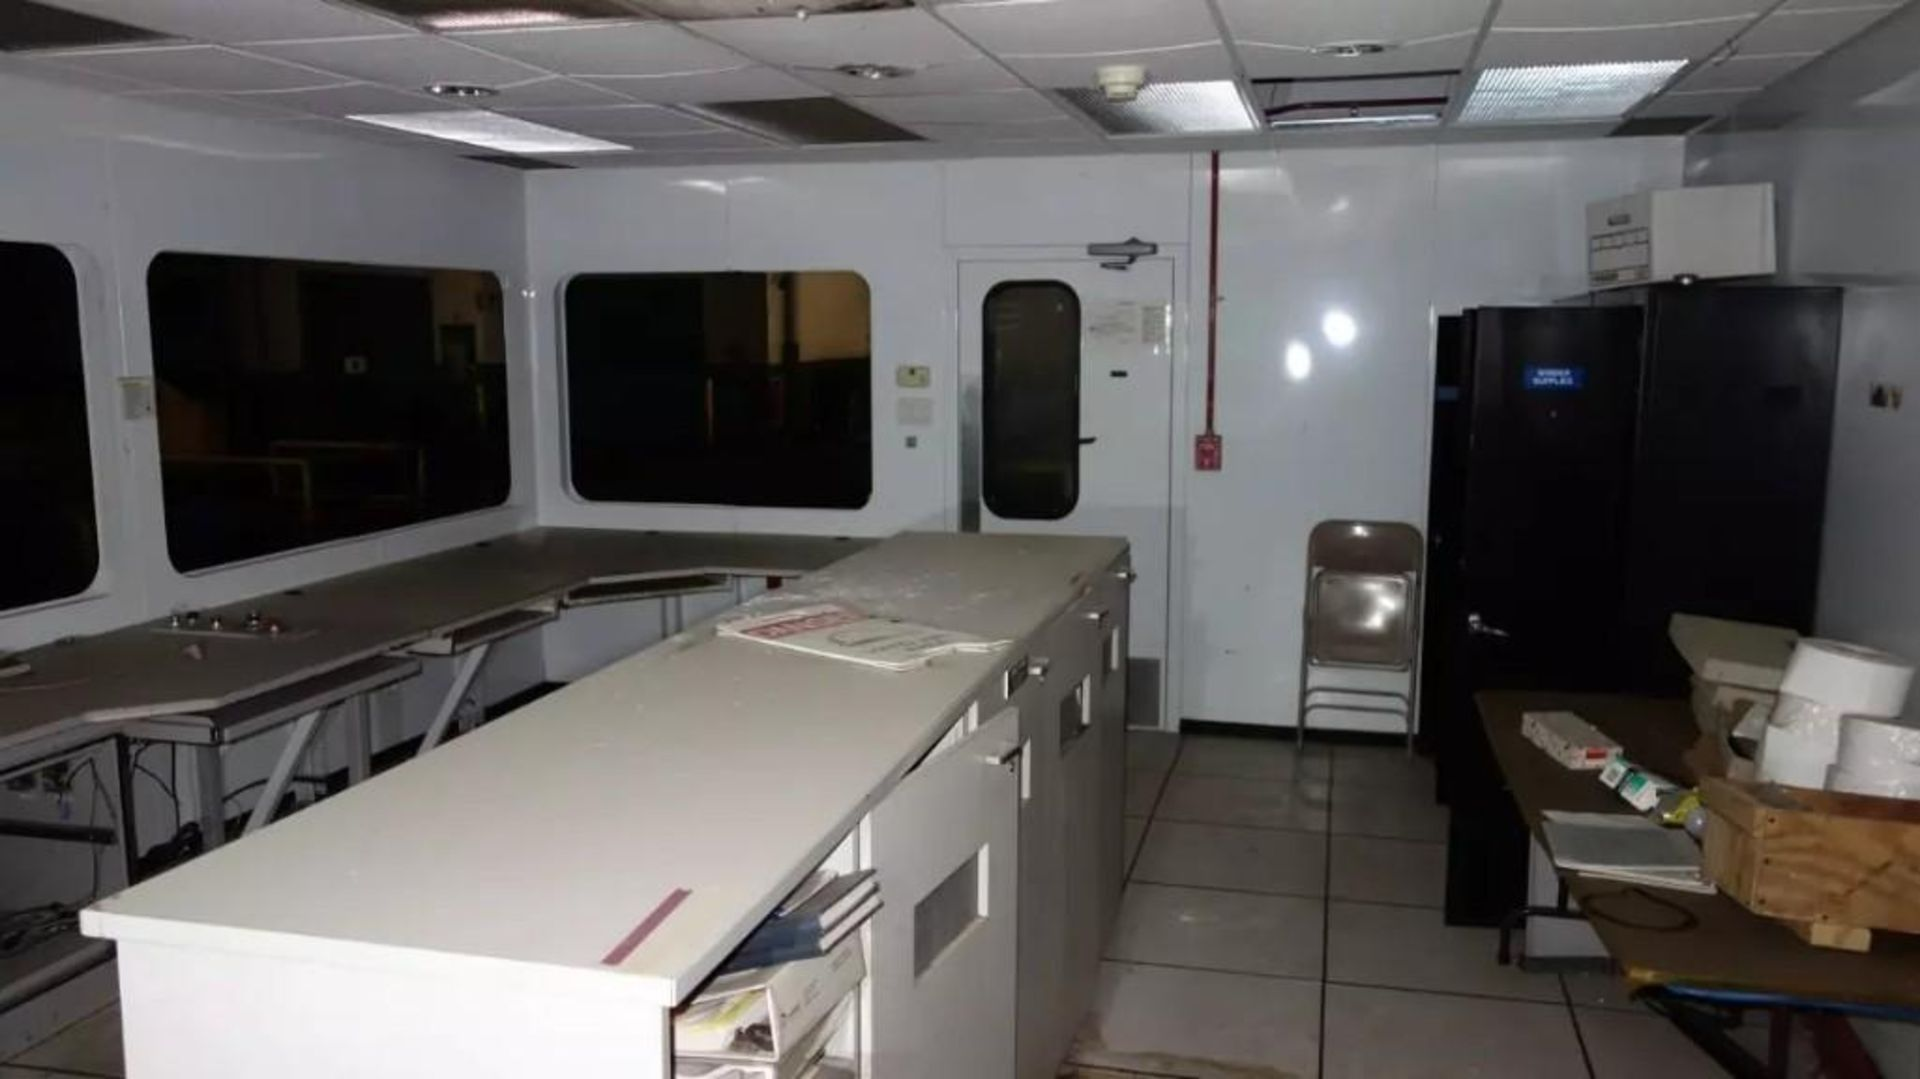 PREFABRICATED MODULAR OFFICE MECART COMMAND CENTER OFFICE WITH CONTENTS, 25X18FT (MISSING WINDOWS) - Image 7 of 11